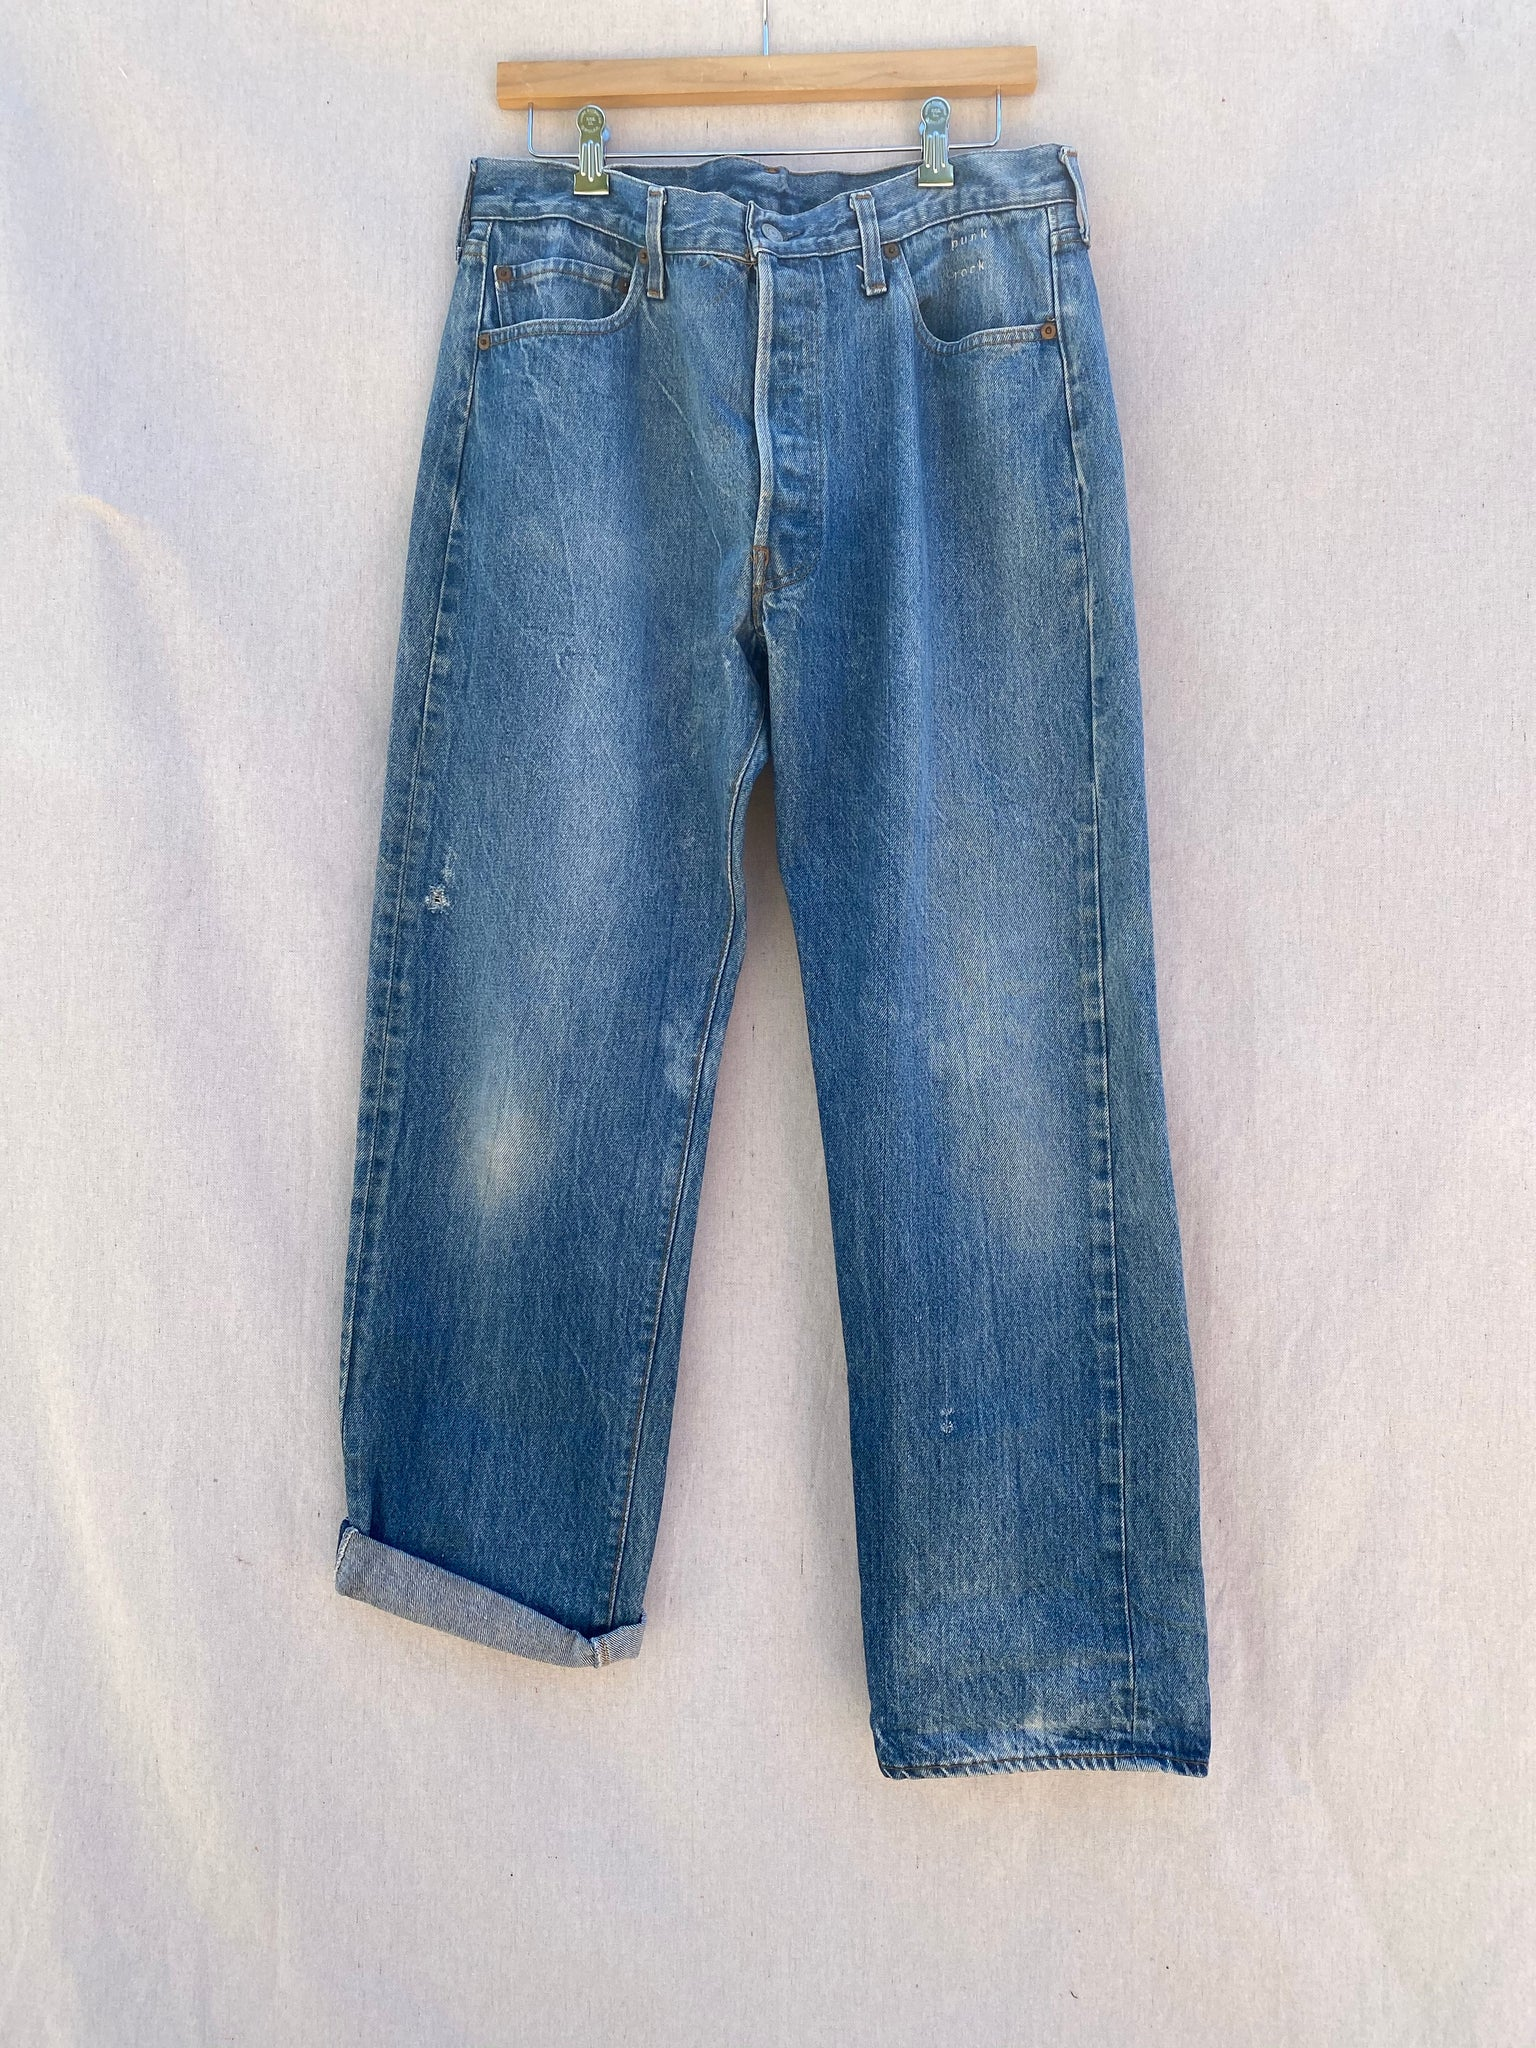 FRONT IMAGE OF FADED BLUE JEANS WITH SMALL PUNK ROCK EMBROIDERY AT TOP LEFT POCKET. RIGHT LEG HEM IS CUFFED/ FOLDED.